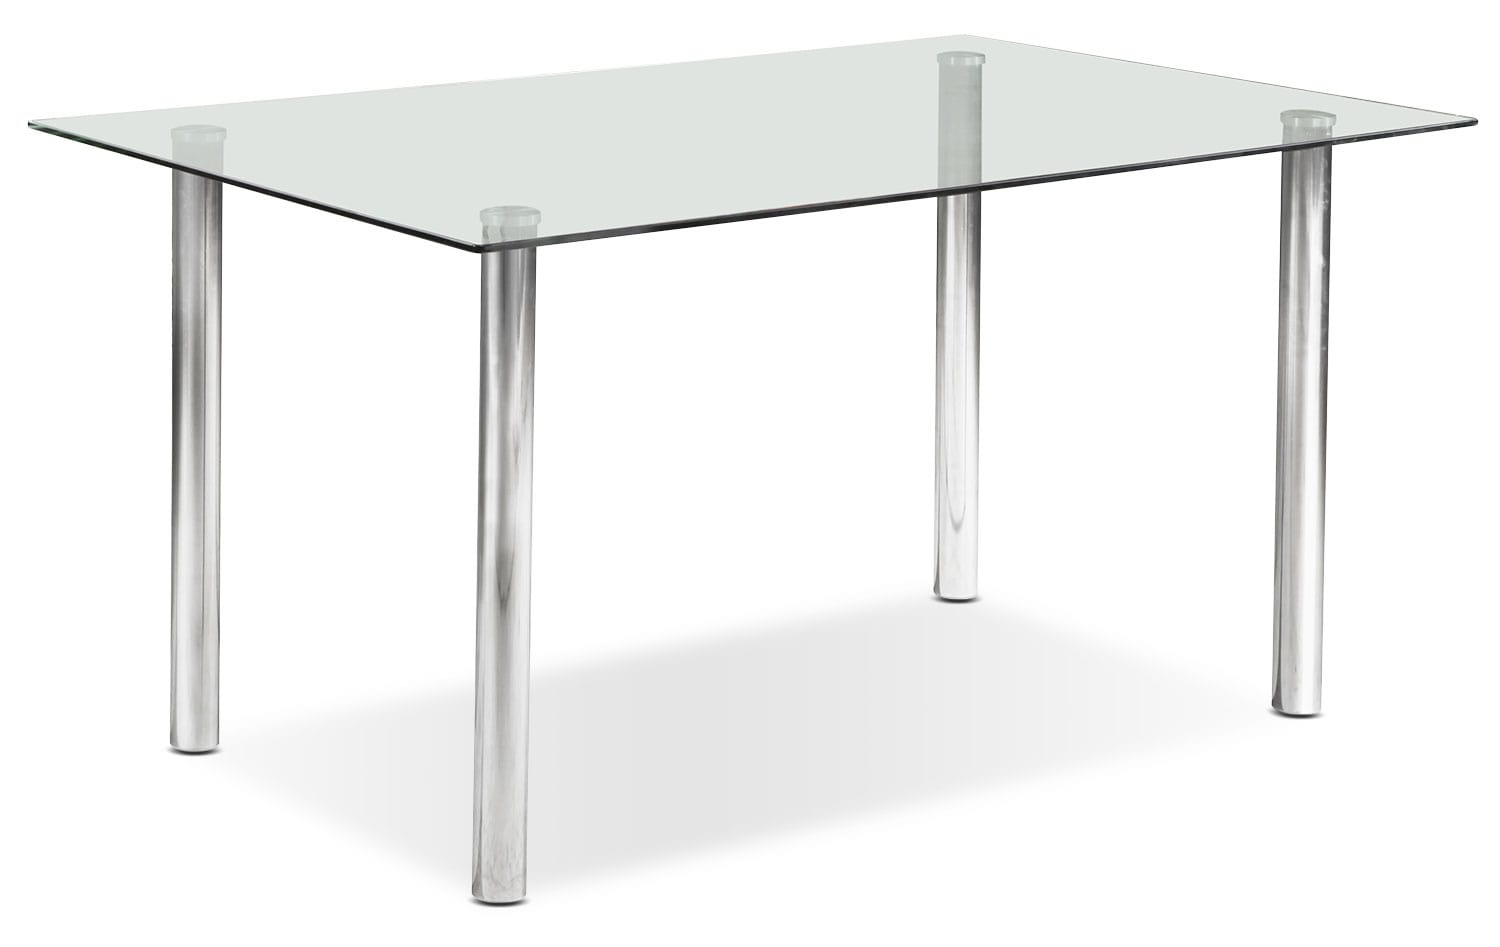 Dining Room Furniture - Koda Dining Table